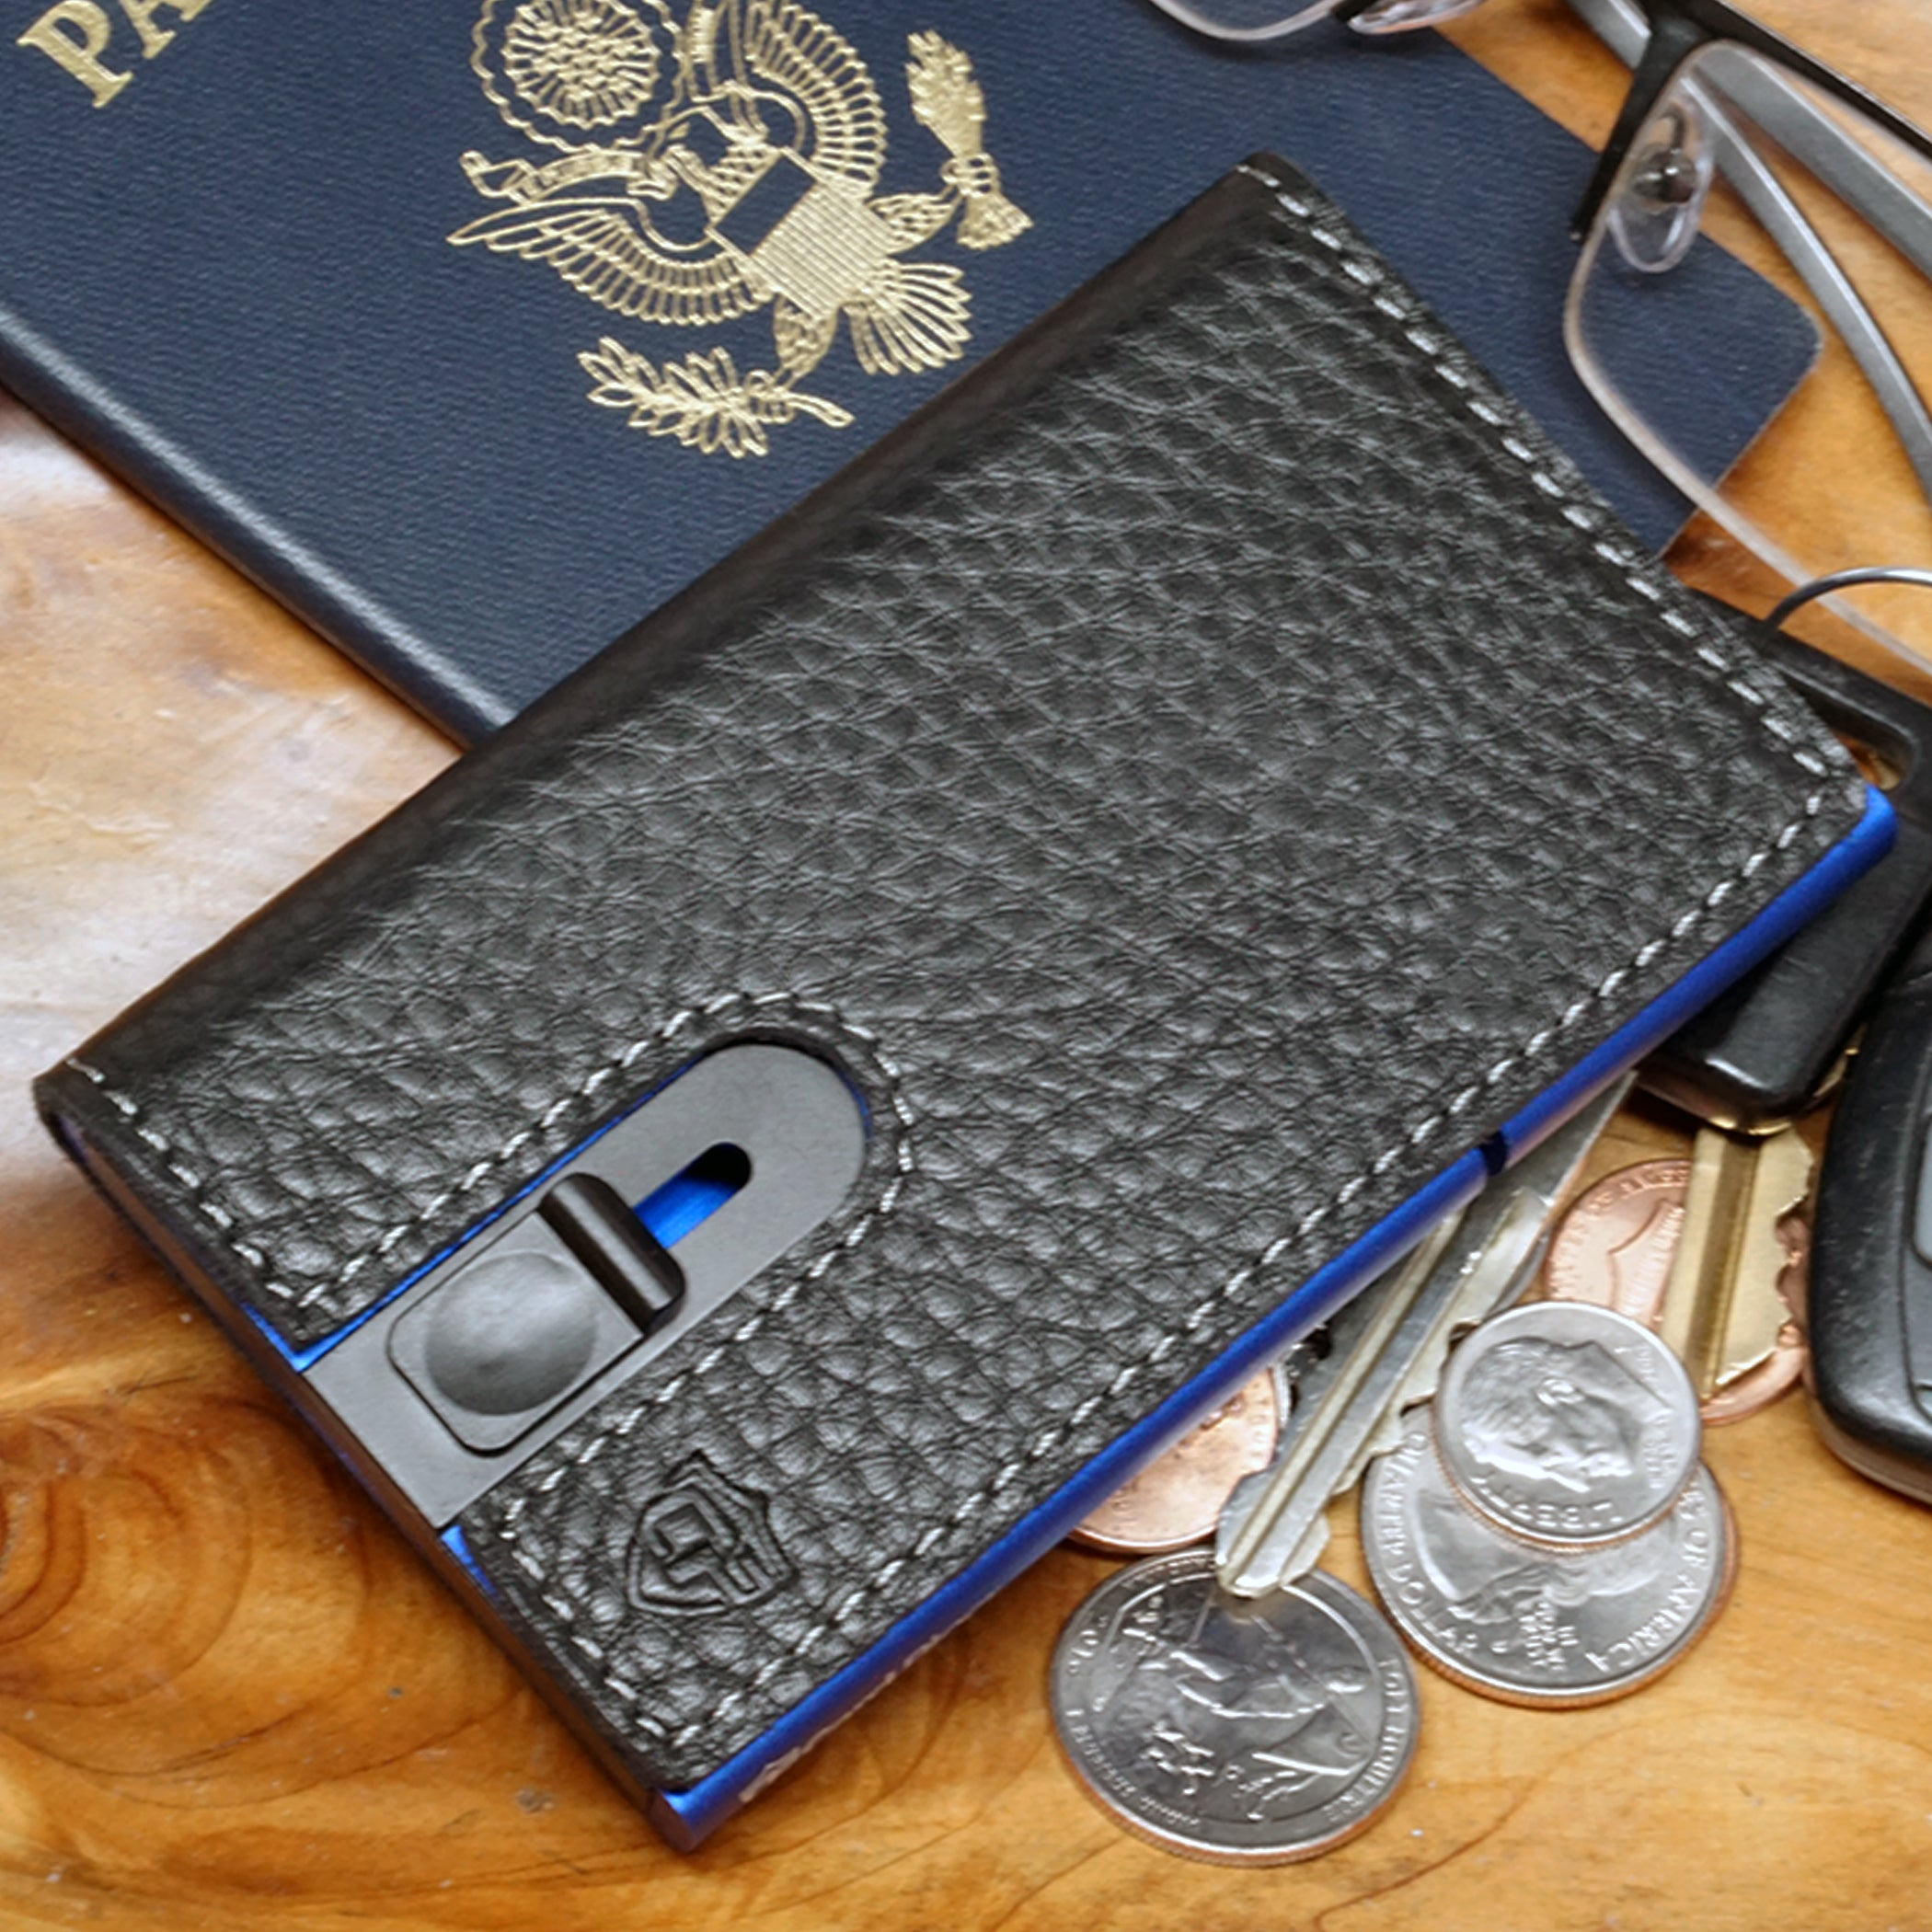 Card Blocr Credit Card Holder in Blue Wrapped in Black Leather | RFID Wallet Travel